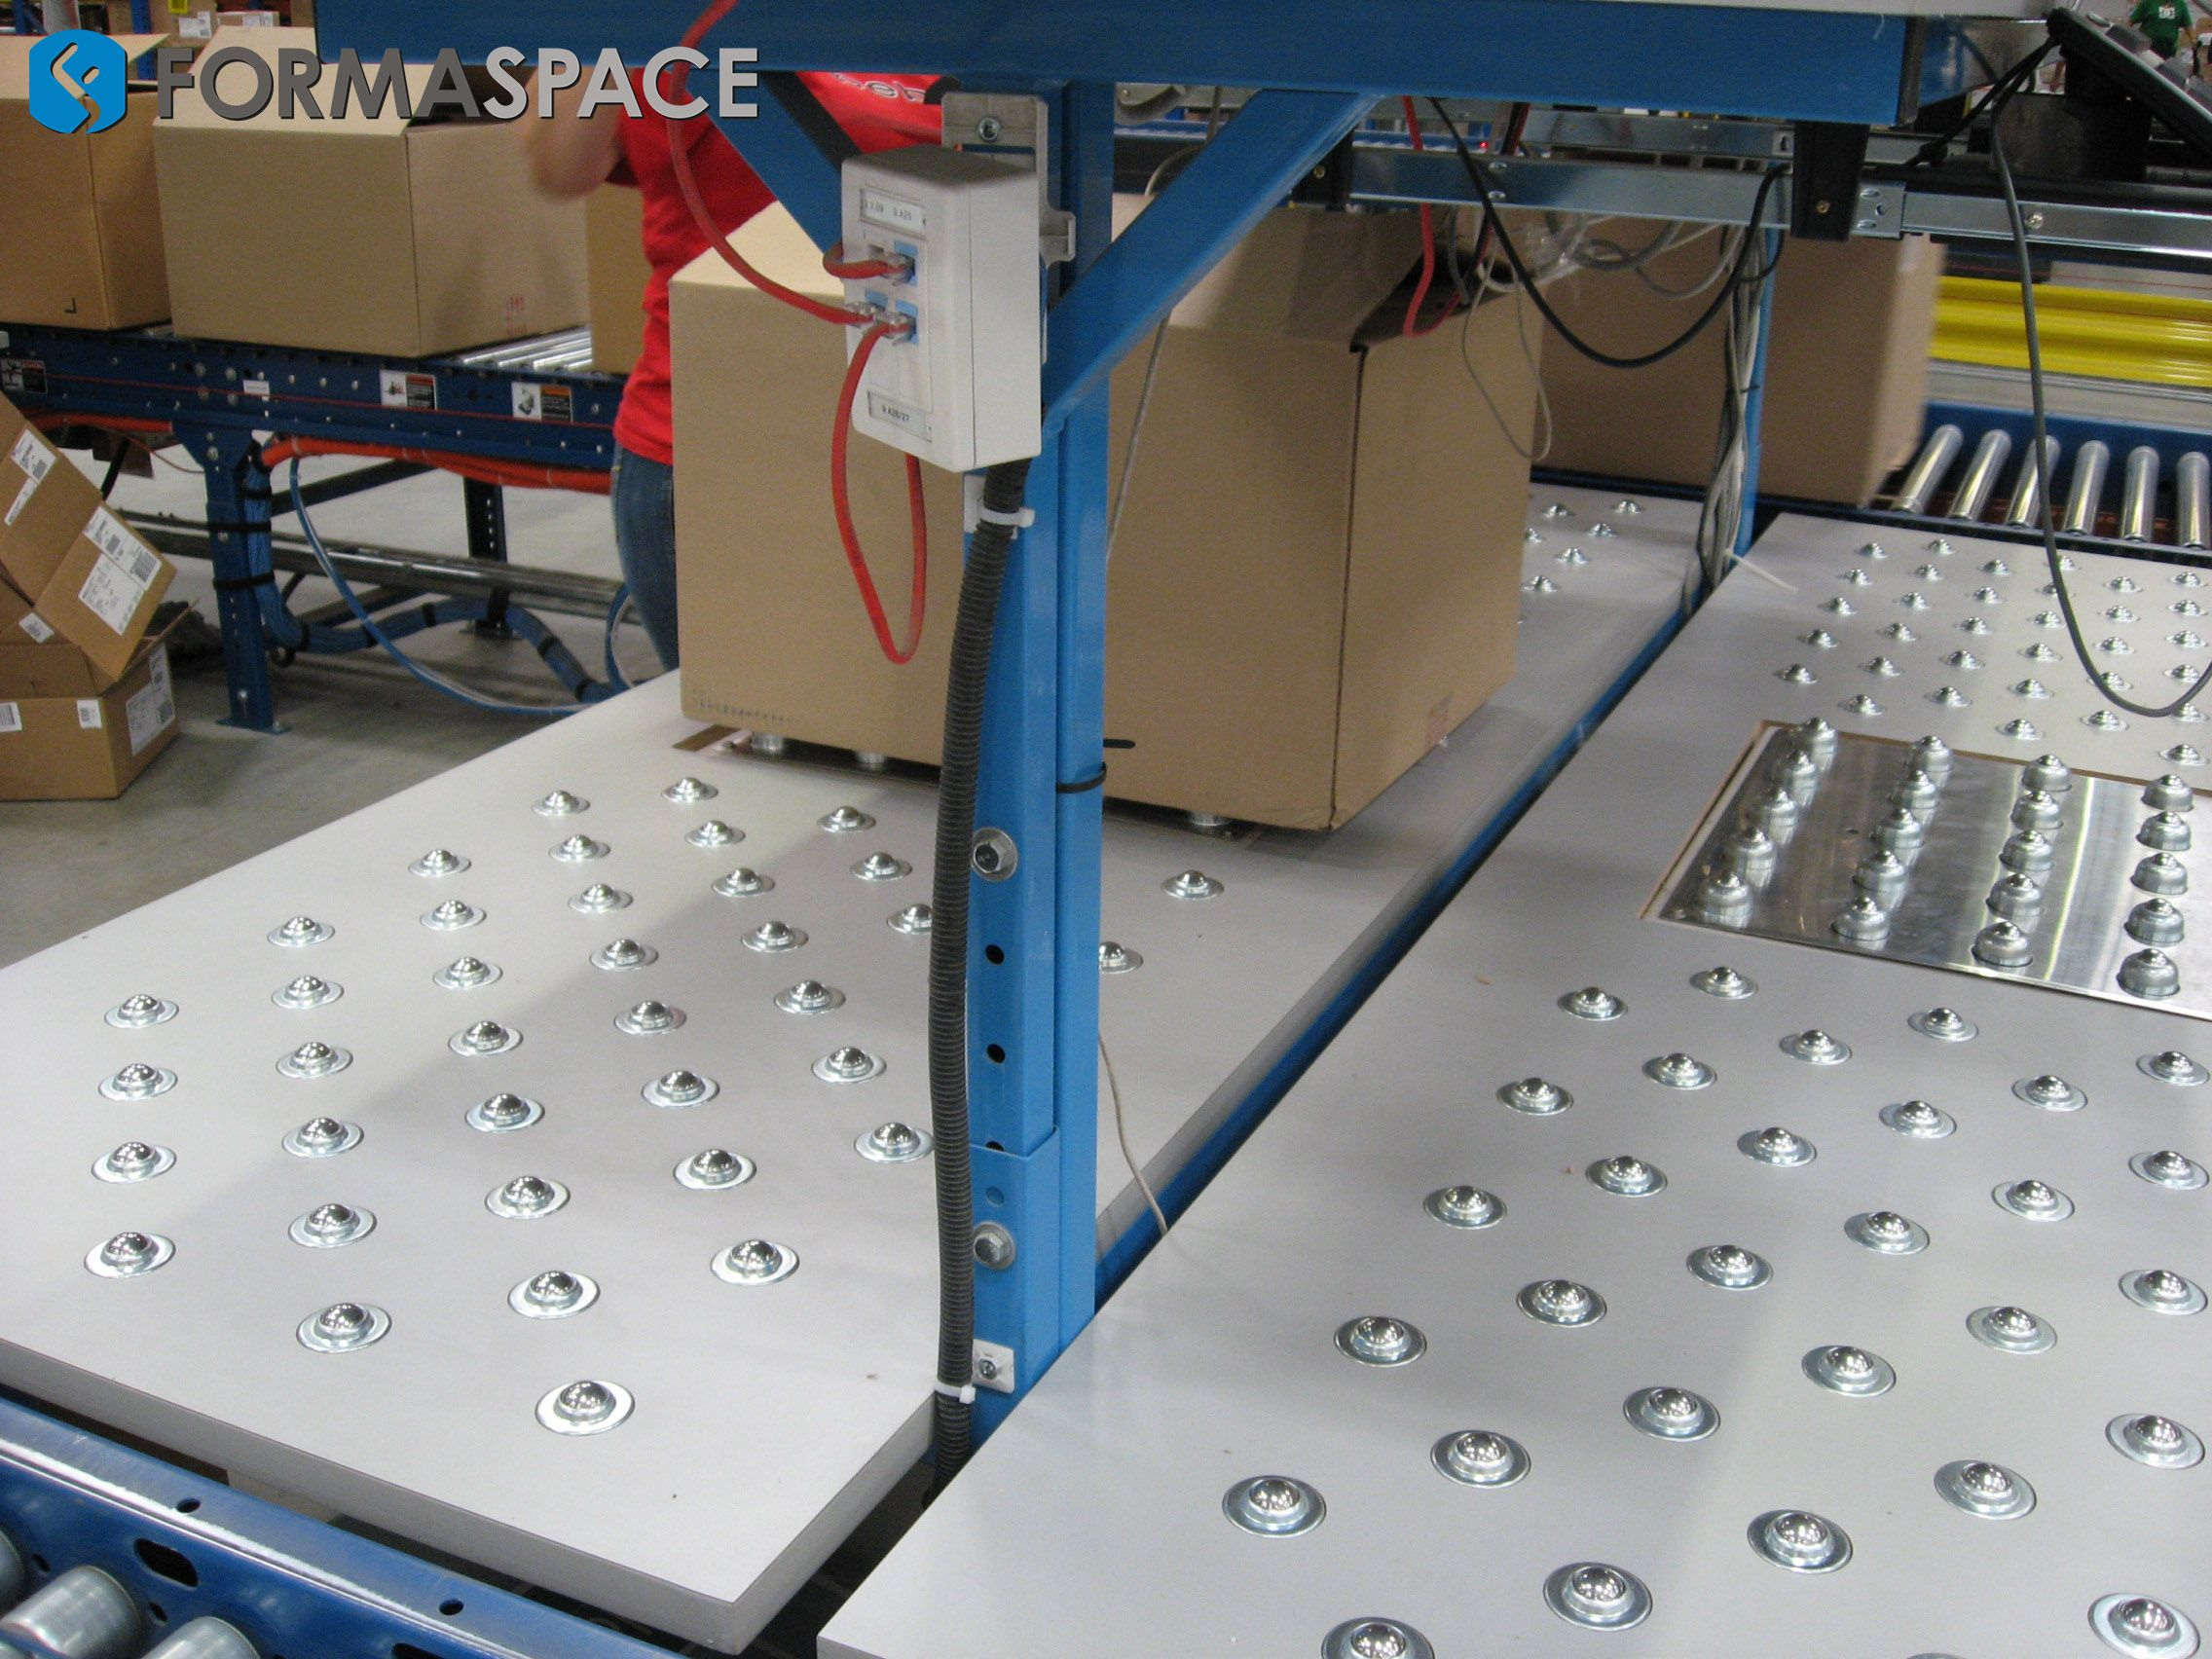 Roller Ball Scale In Workstation With Conveyor System - Formaspace